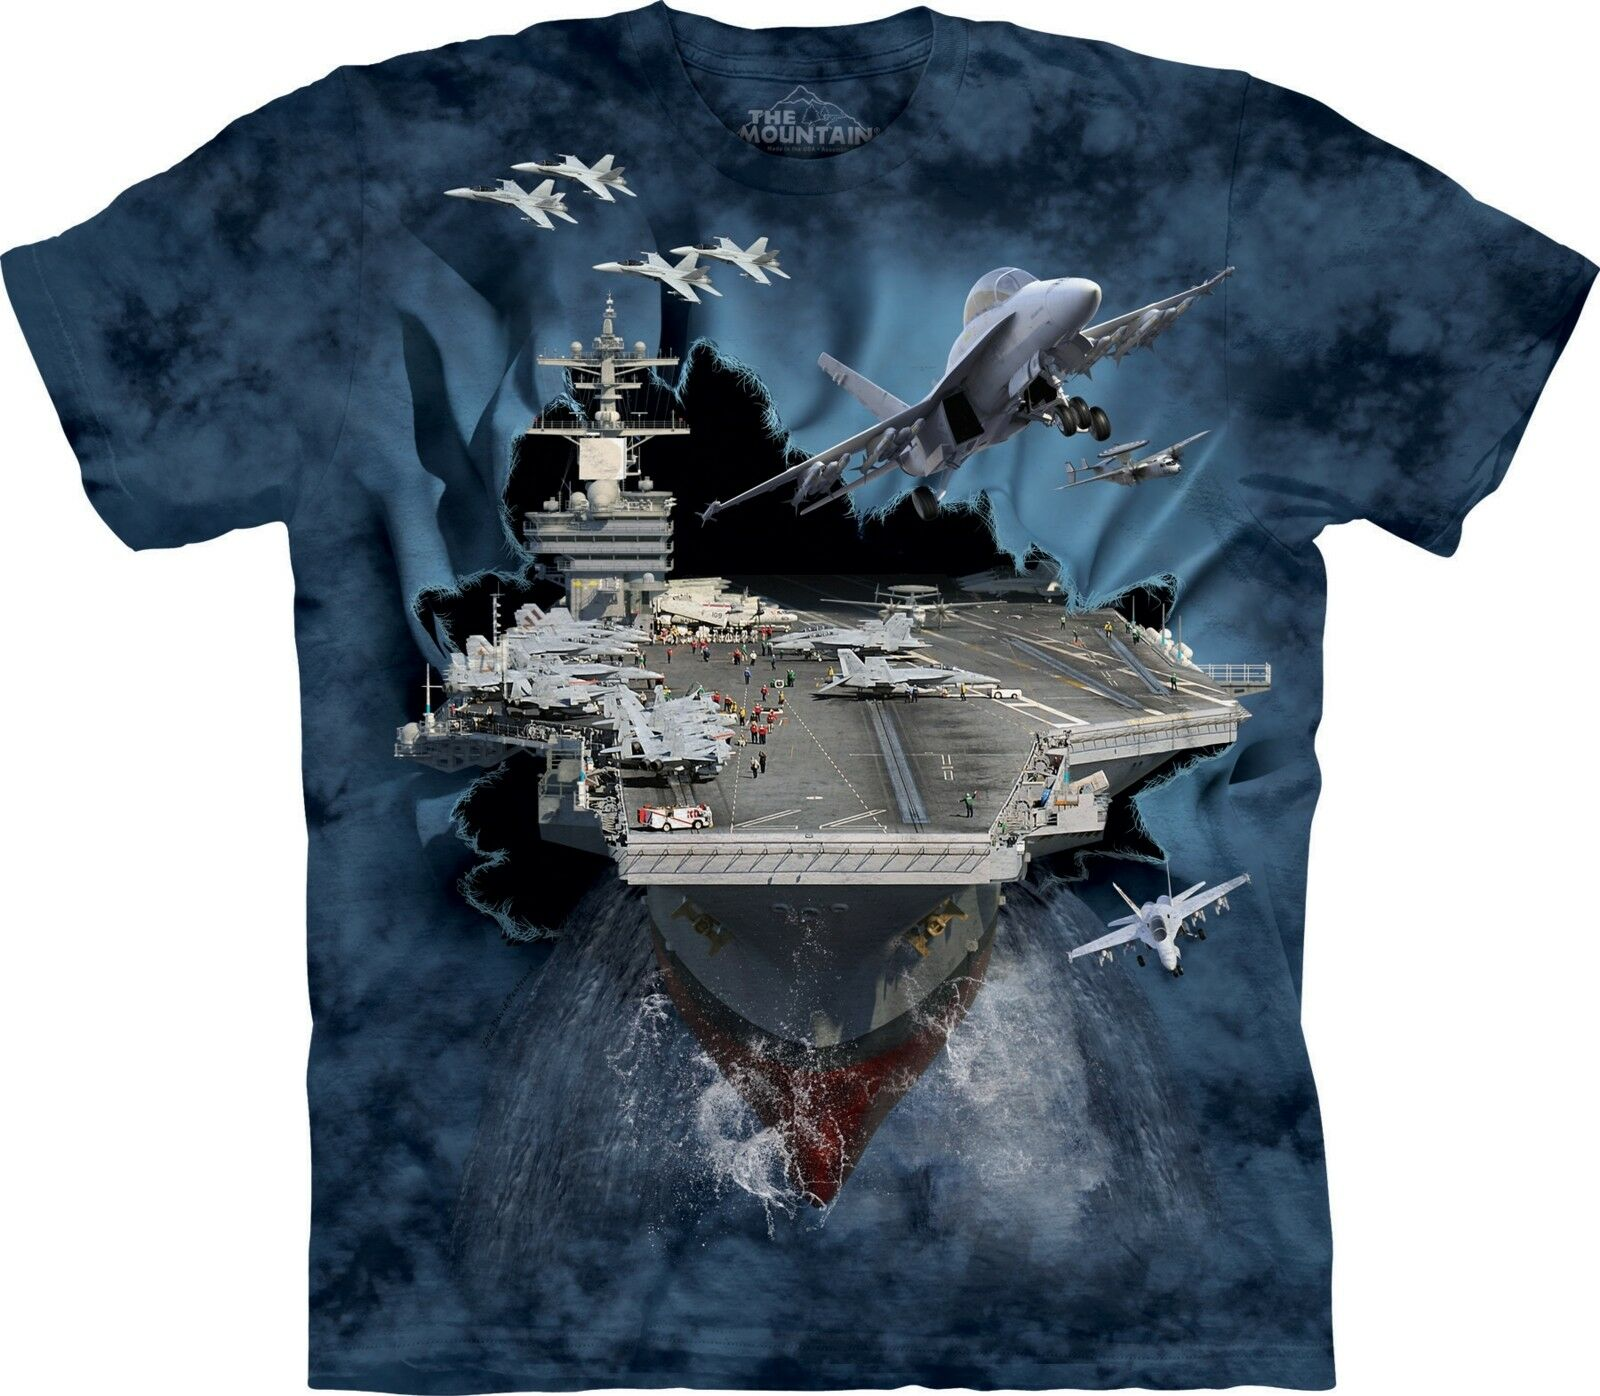 Aircraft Carrier T Shirt Adult Unisex The Mountain